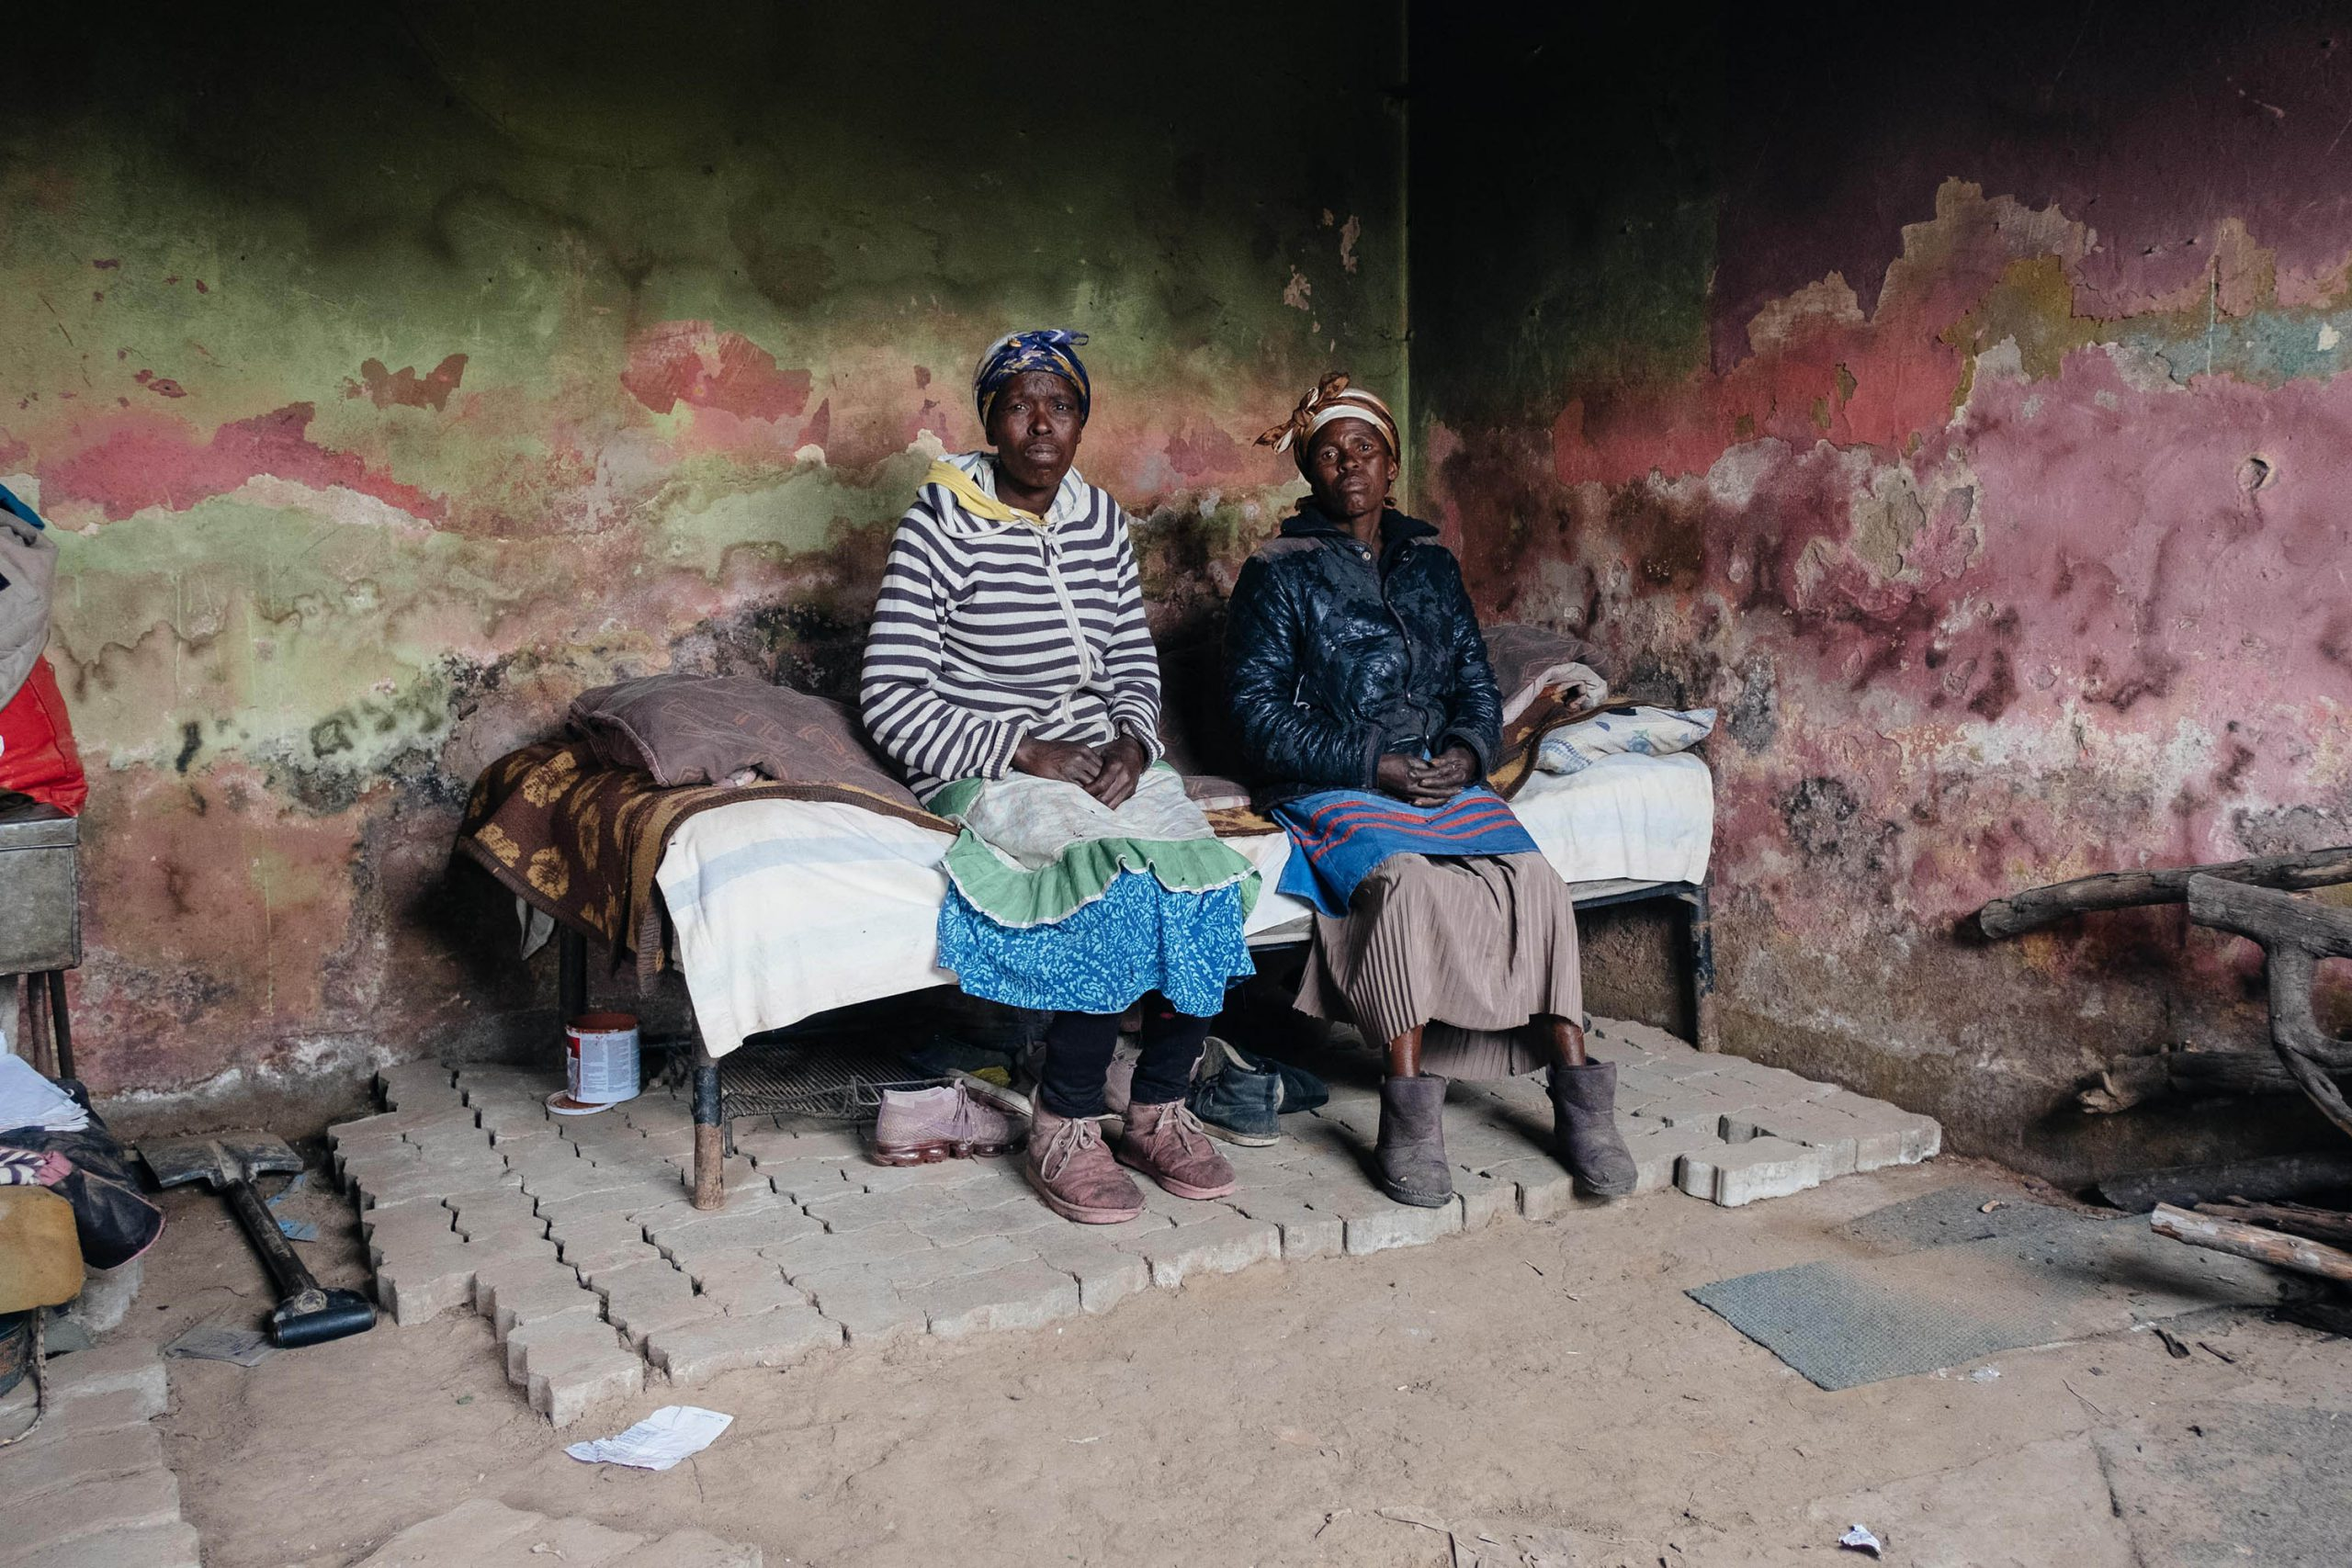 10 December 2019: From left, Lindiwe Mbundana, 54, and Nonkoliso Mbundana, 51, in the room they share in a house in Old Location. The house has no electricity or running water.